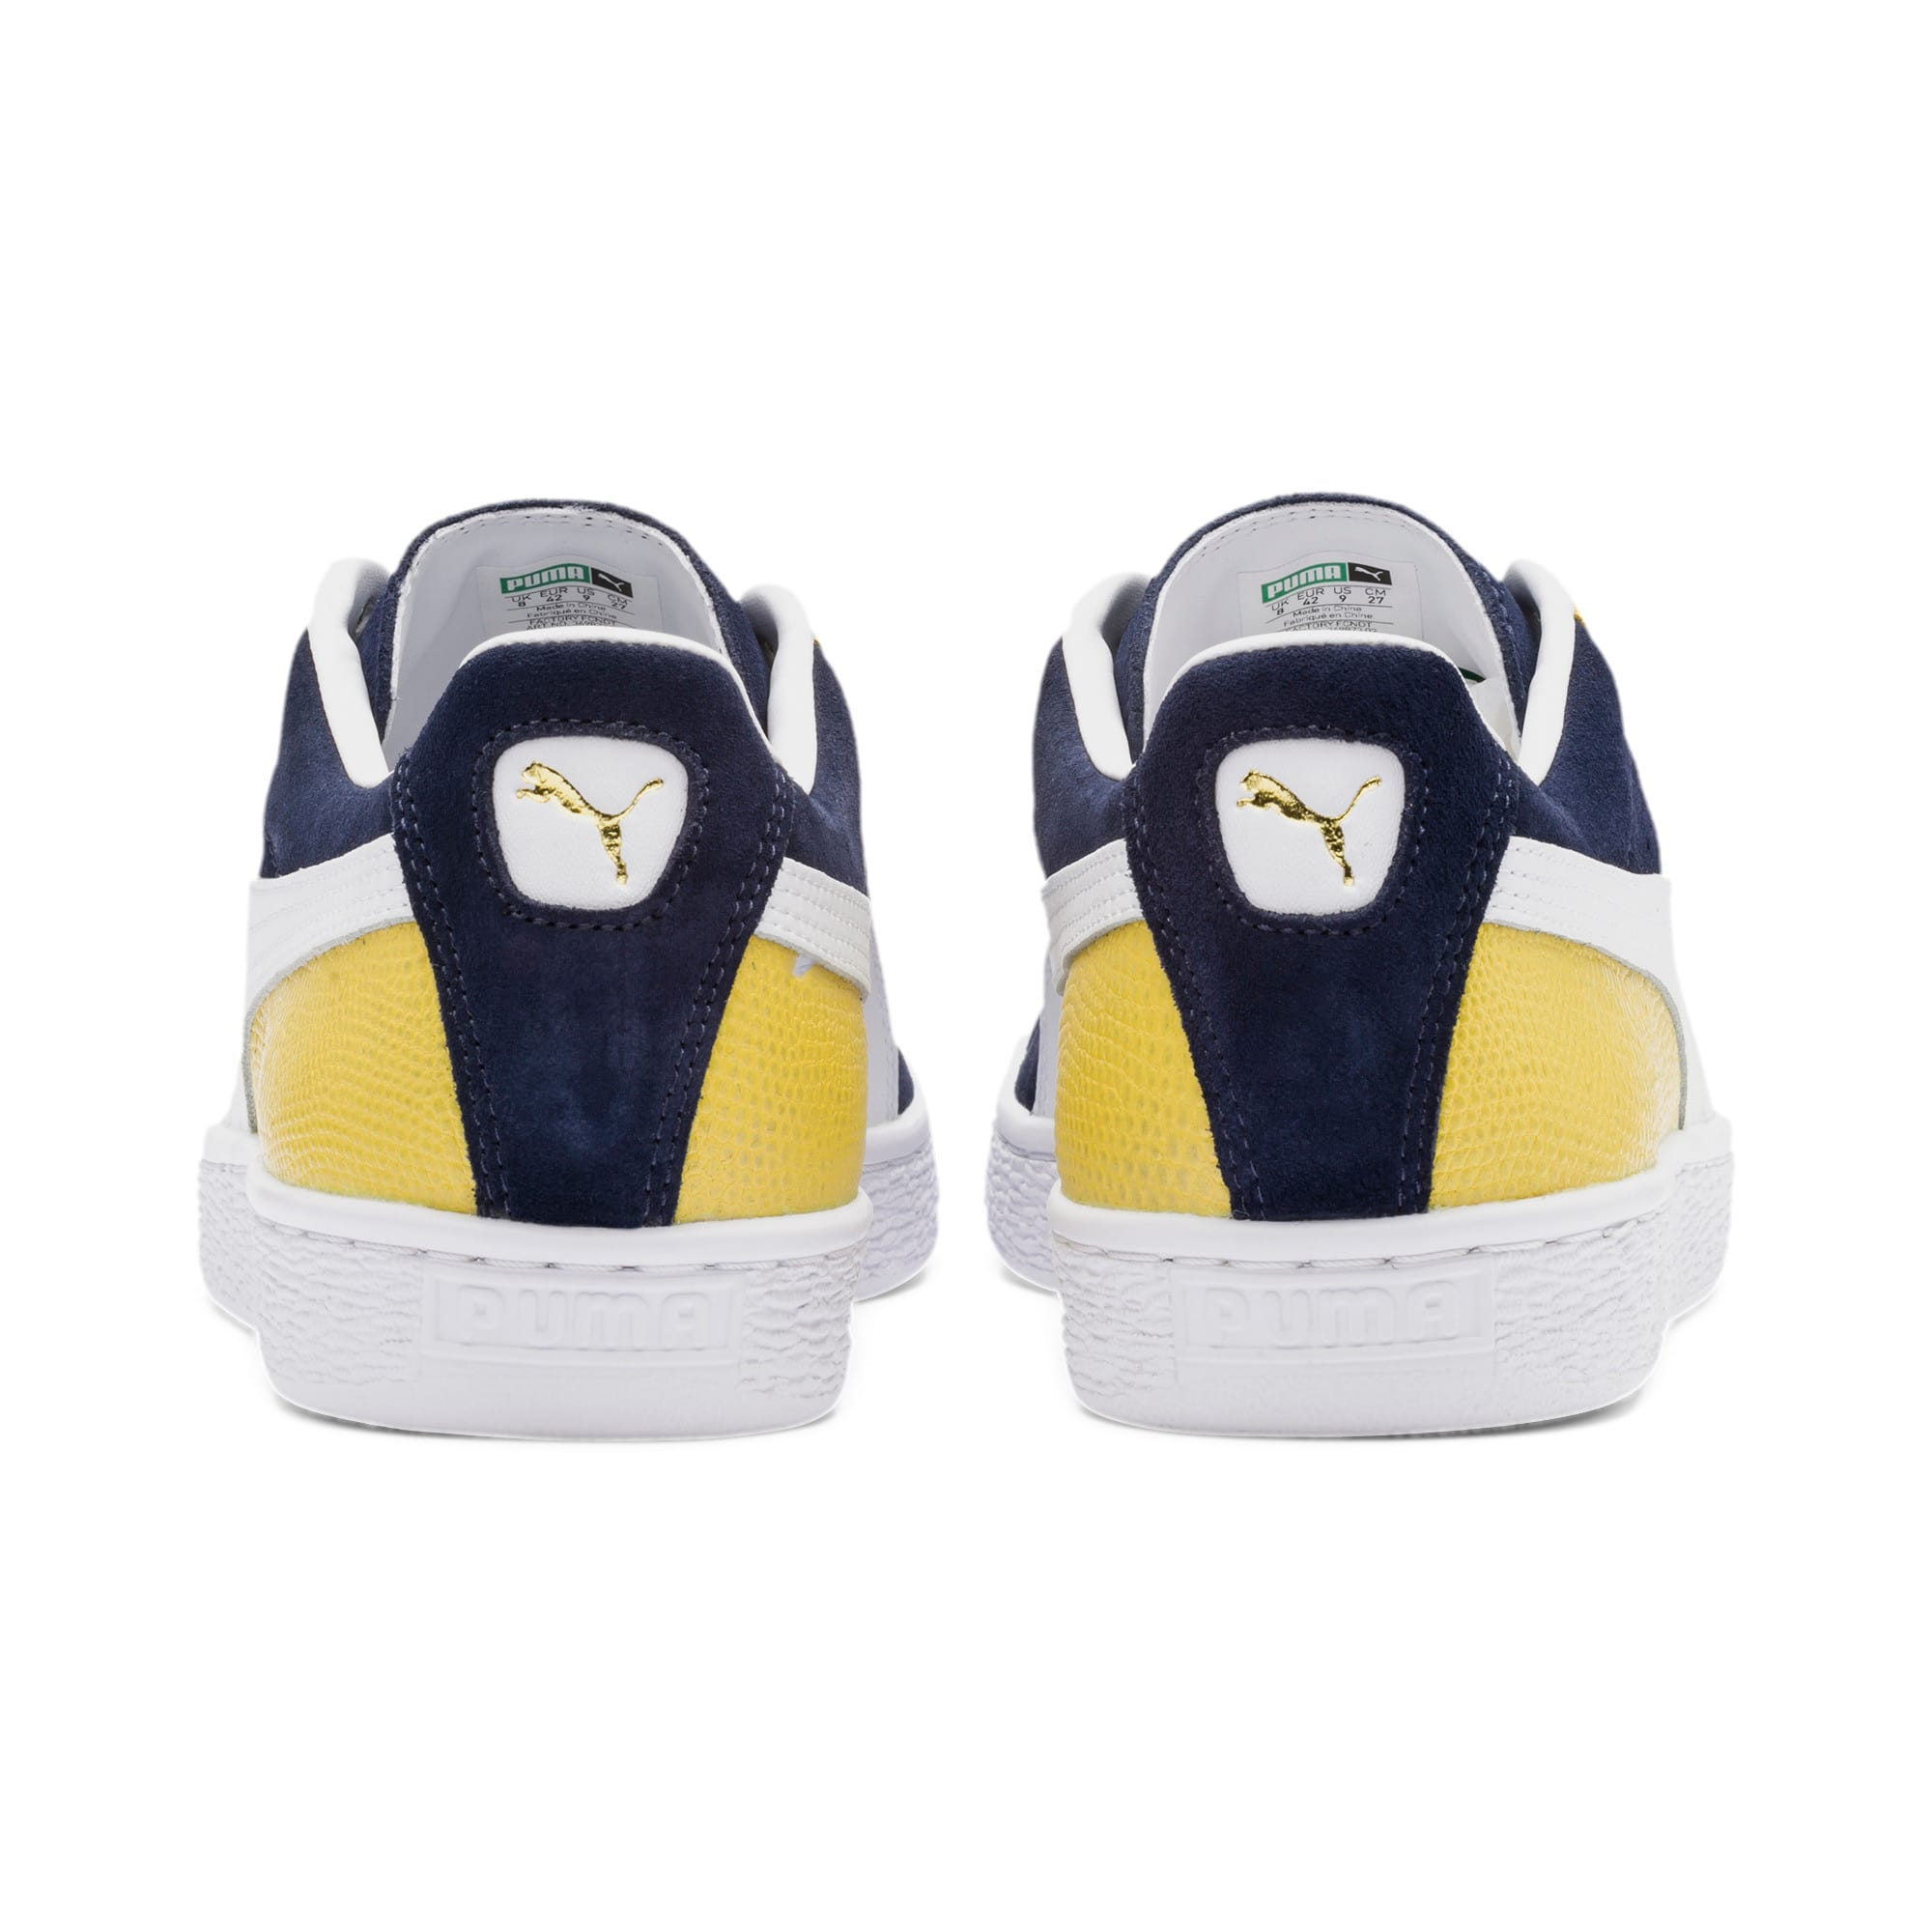 Thumbnail 5 of Suede Classic Block Sneakers, Peacoat-Sulphur-Puma White, medium